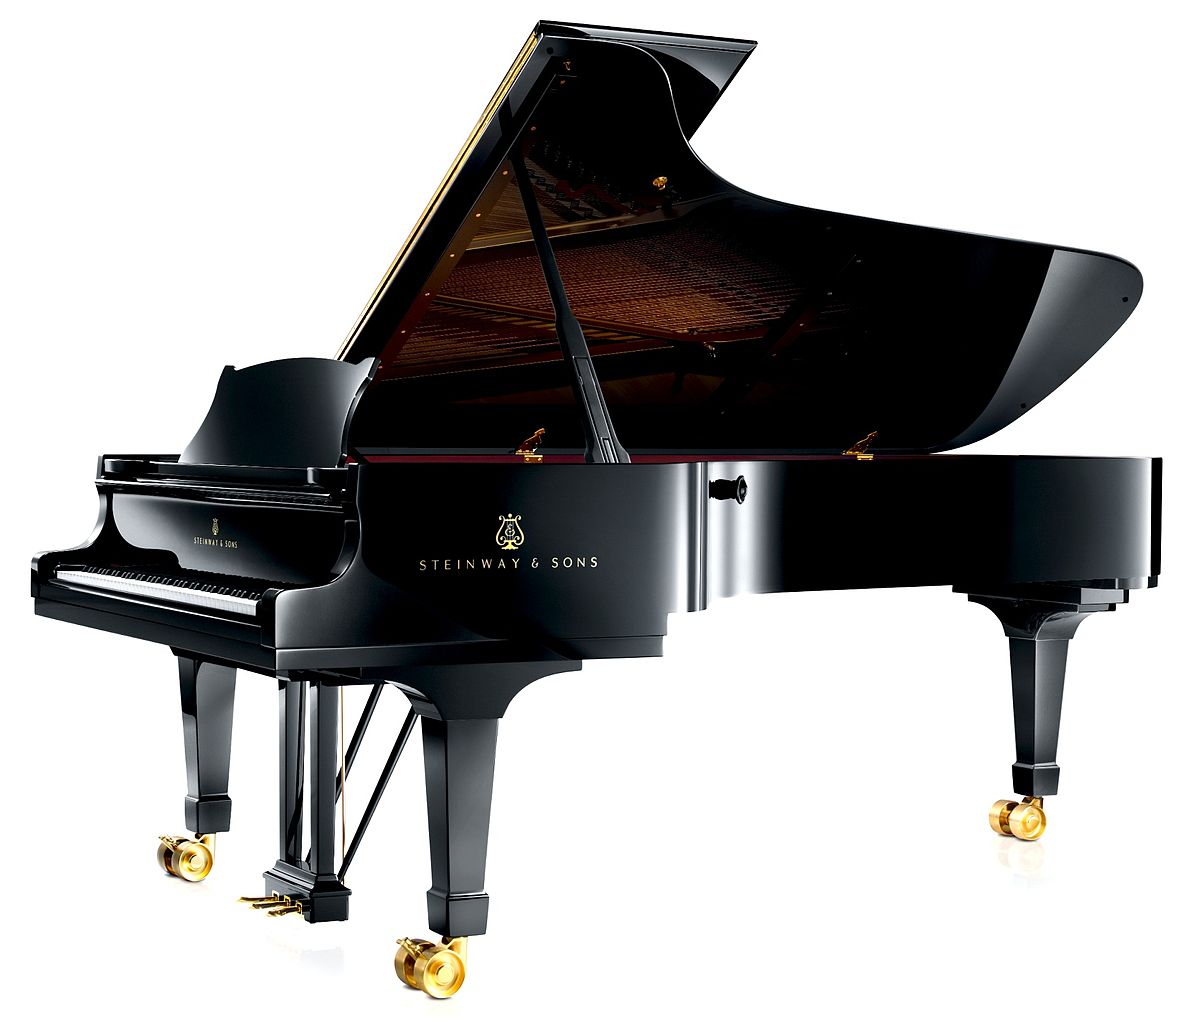 file steinway sons concert grand piano model d 274. Black Bedroom Furniture Sets. Home Design Ideas